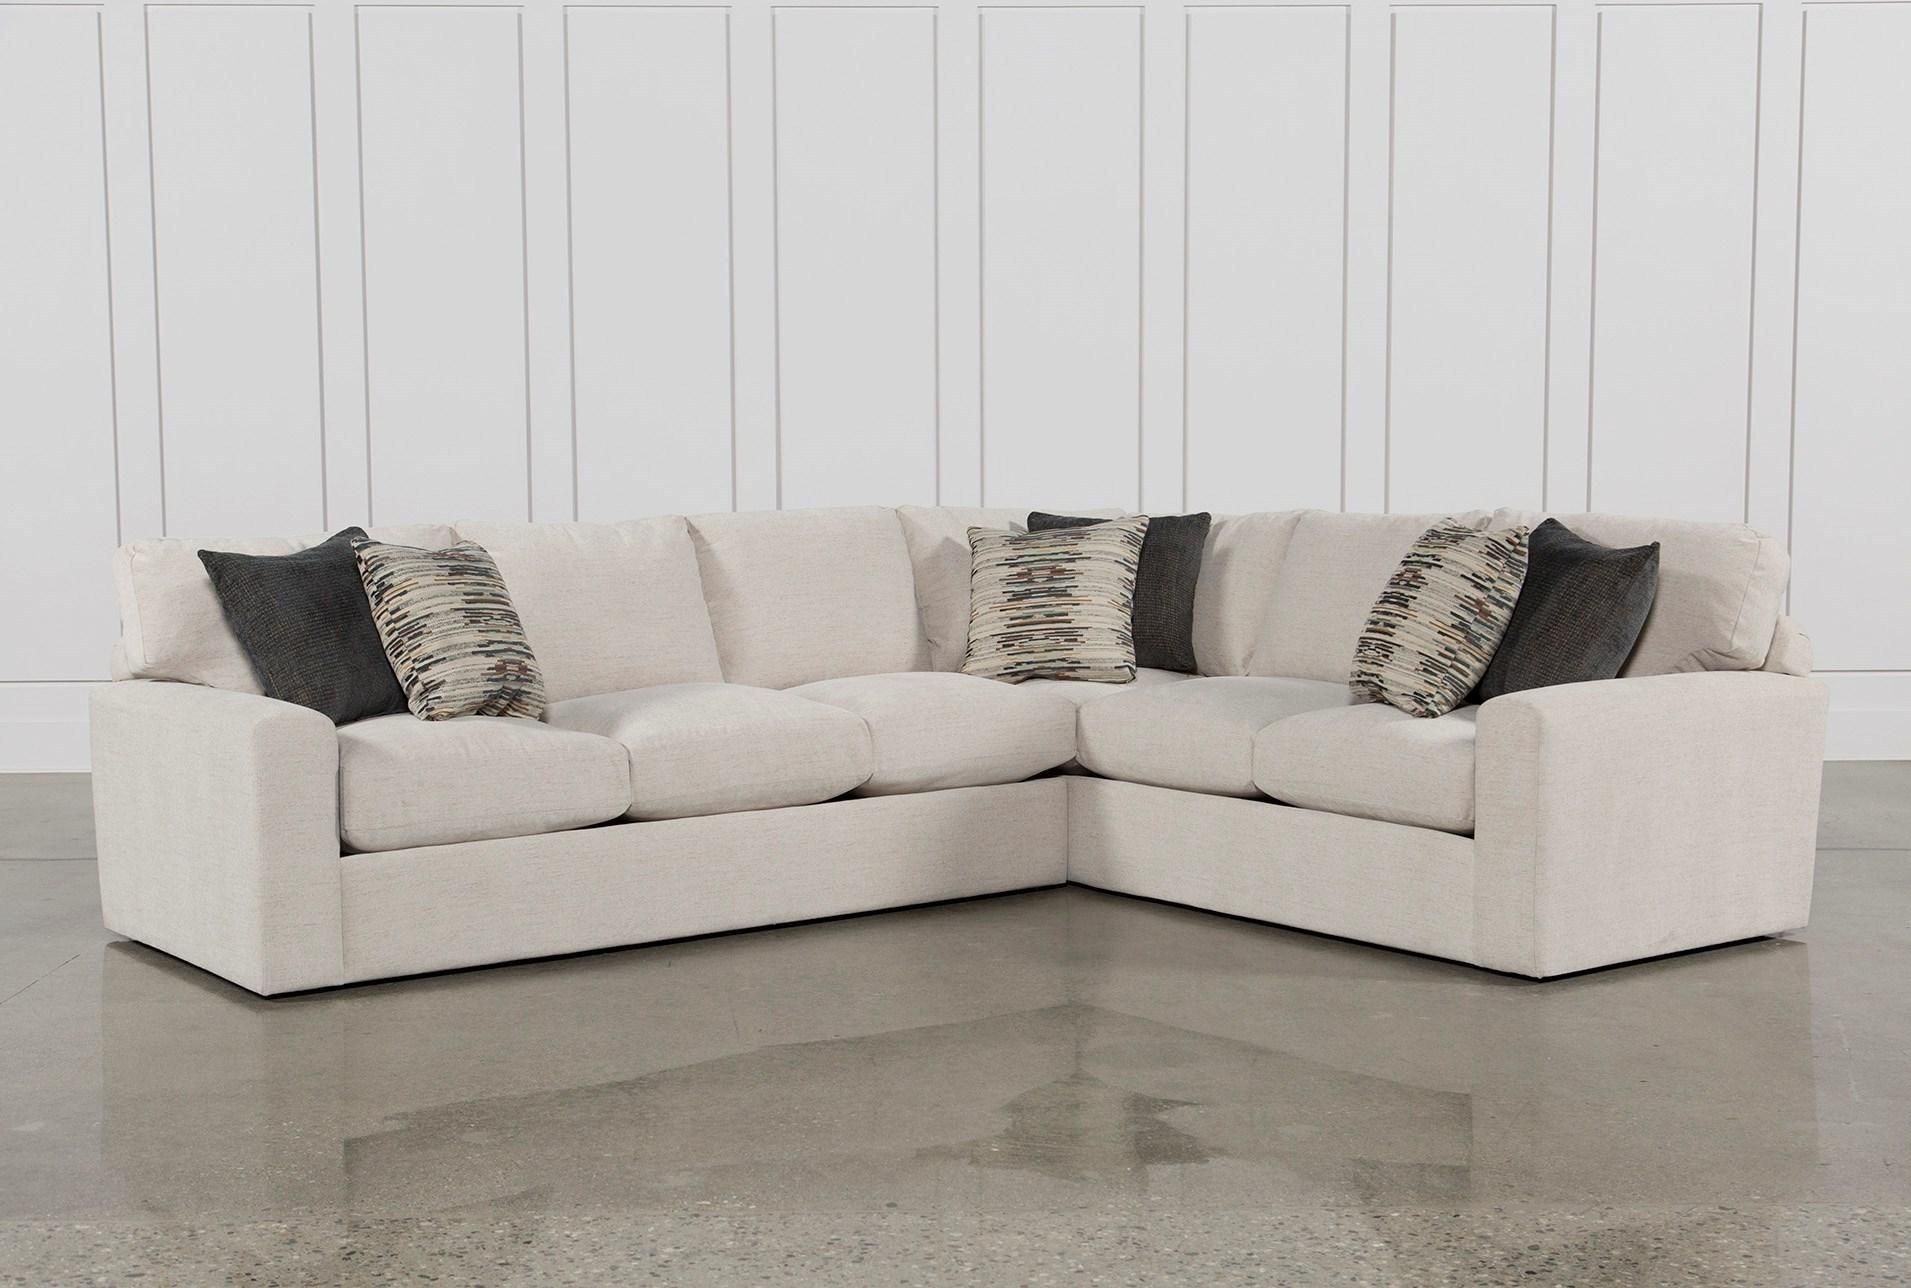 Bowen 2 Piece Sectional, White, Sofas   Living Rooms, Sinks And Room With Adeline 3 Piece Sectionals (Image 8 of 25)